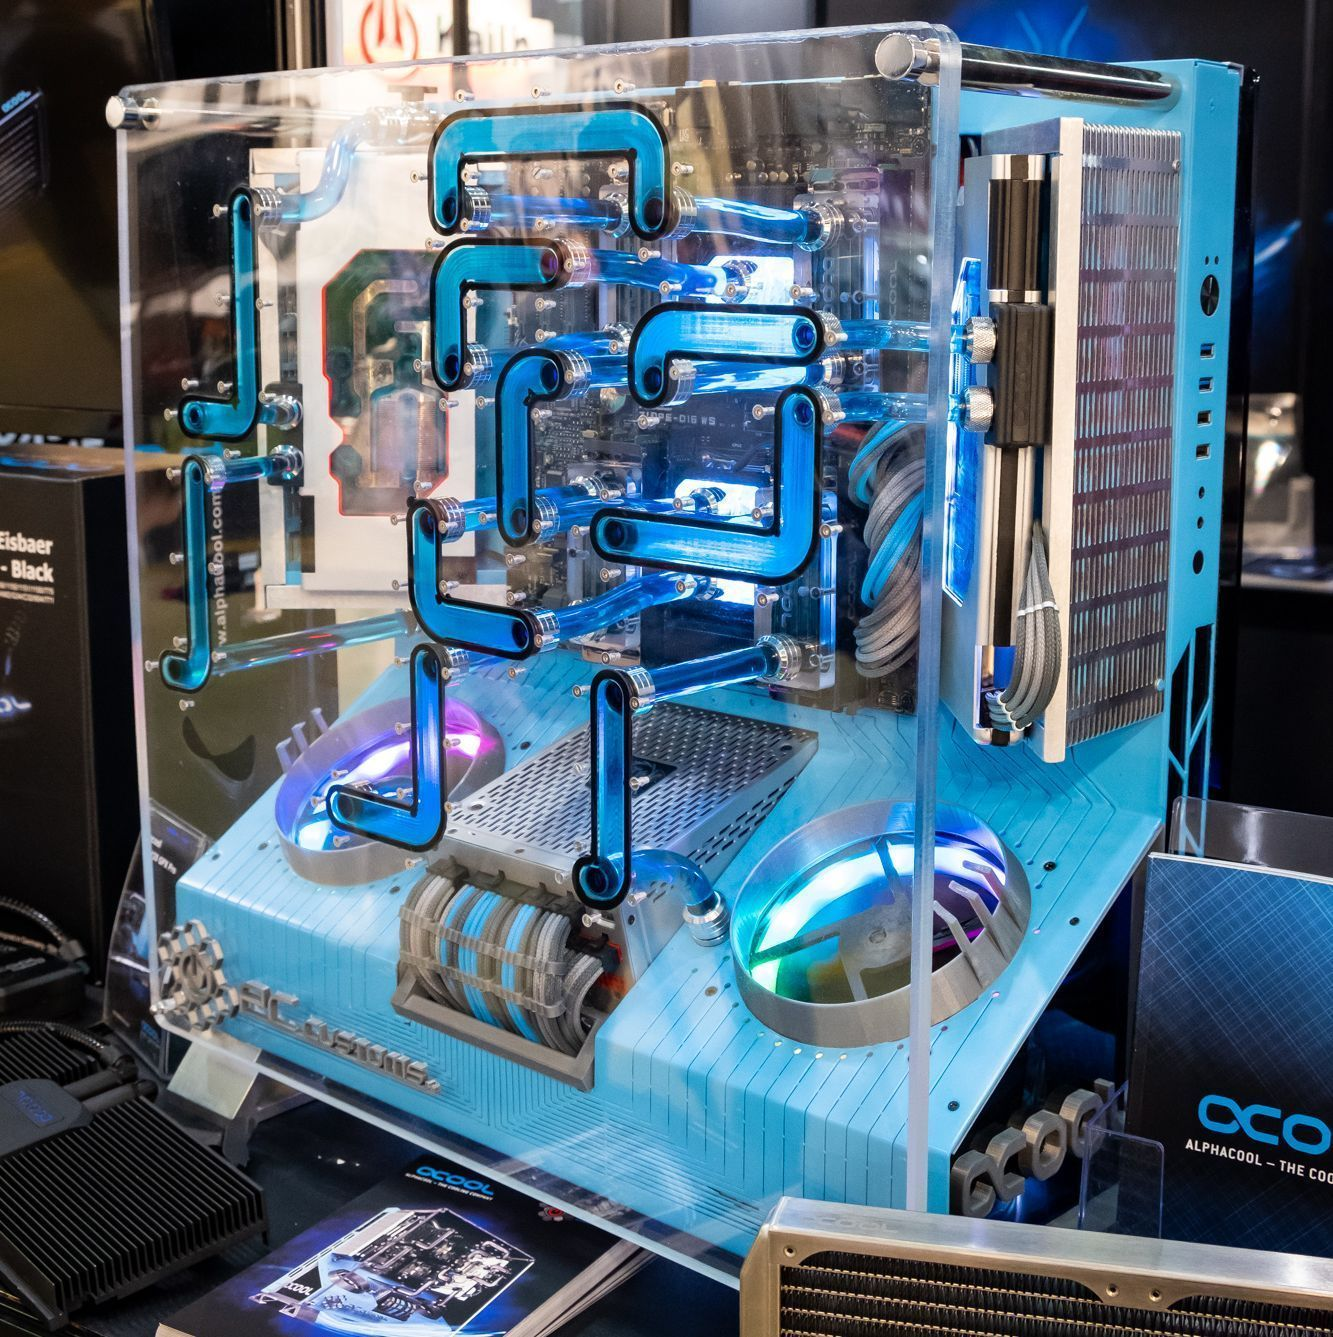 Computex 2018 Alphacool Booth Water Cooling Delivery Integrated